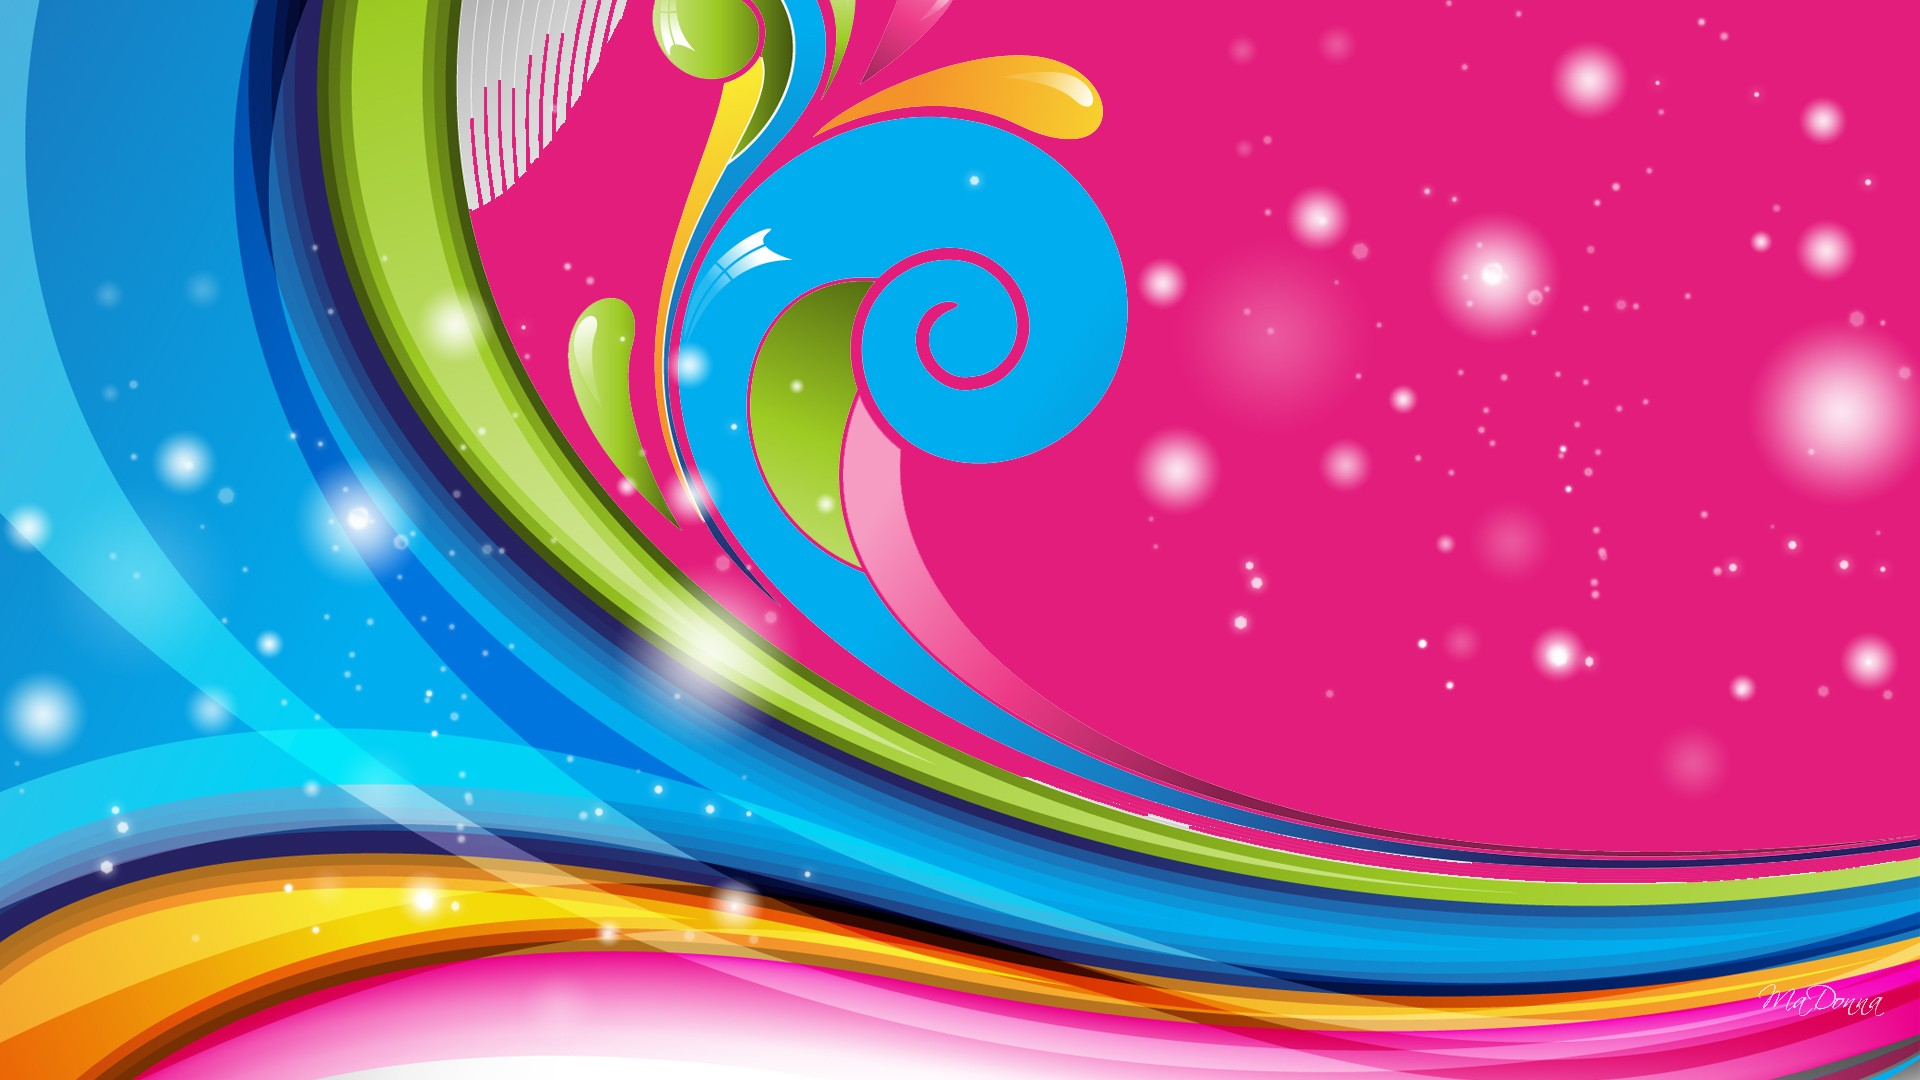 Colorful wallpapers for desktop 13 1920x1080